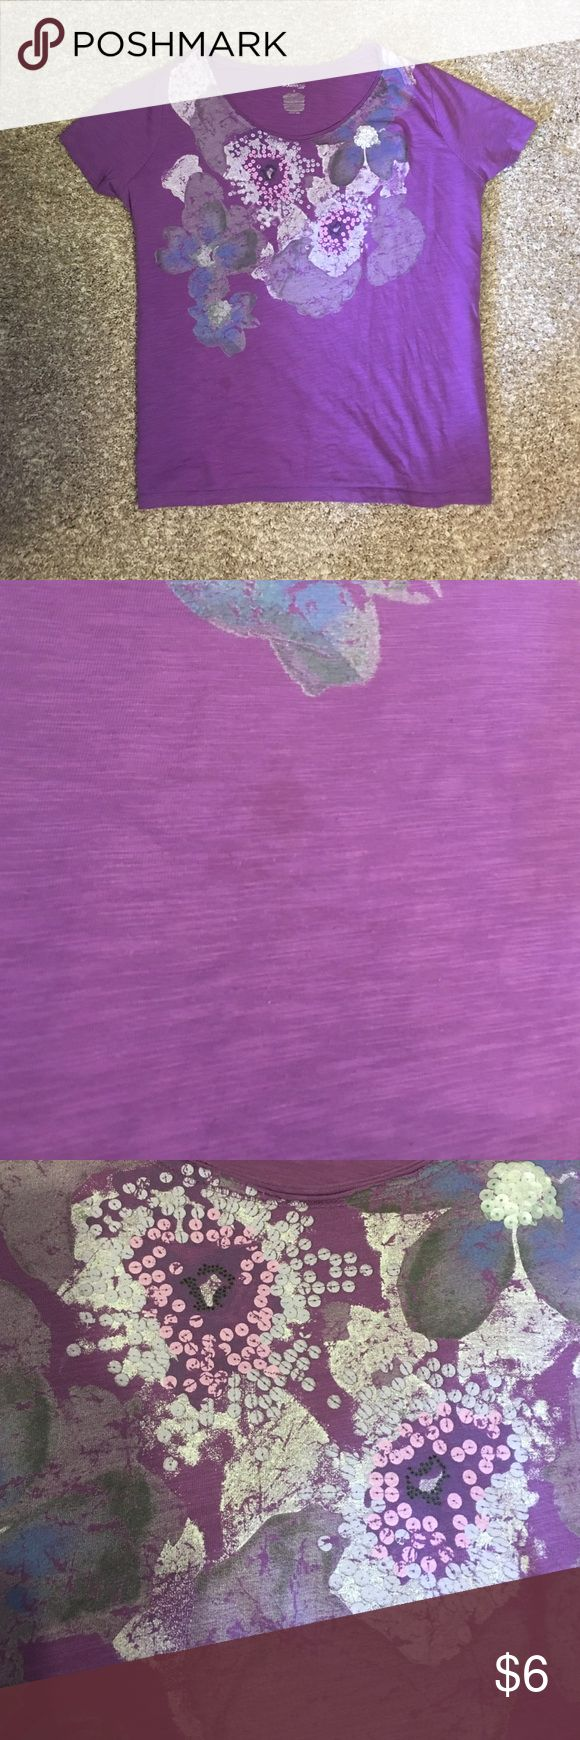 St. John's Bay Women's Purple Shirt Has been worn. Small stain on front of shirt as shown on picture. Comes from a smoke home! St. John's Bay Tops Tees - Short Sleeve